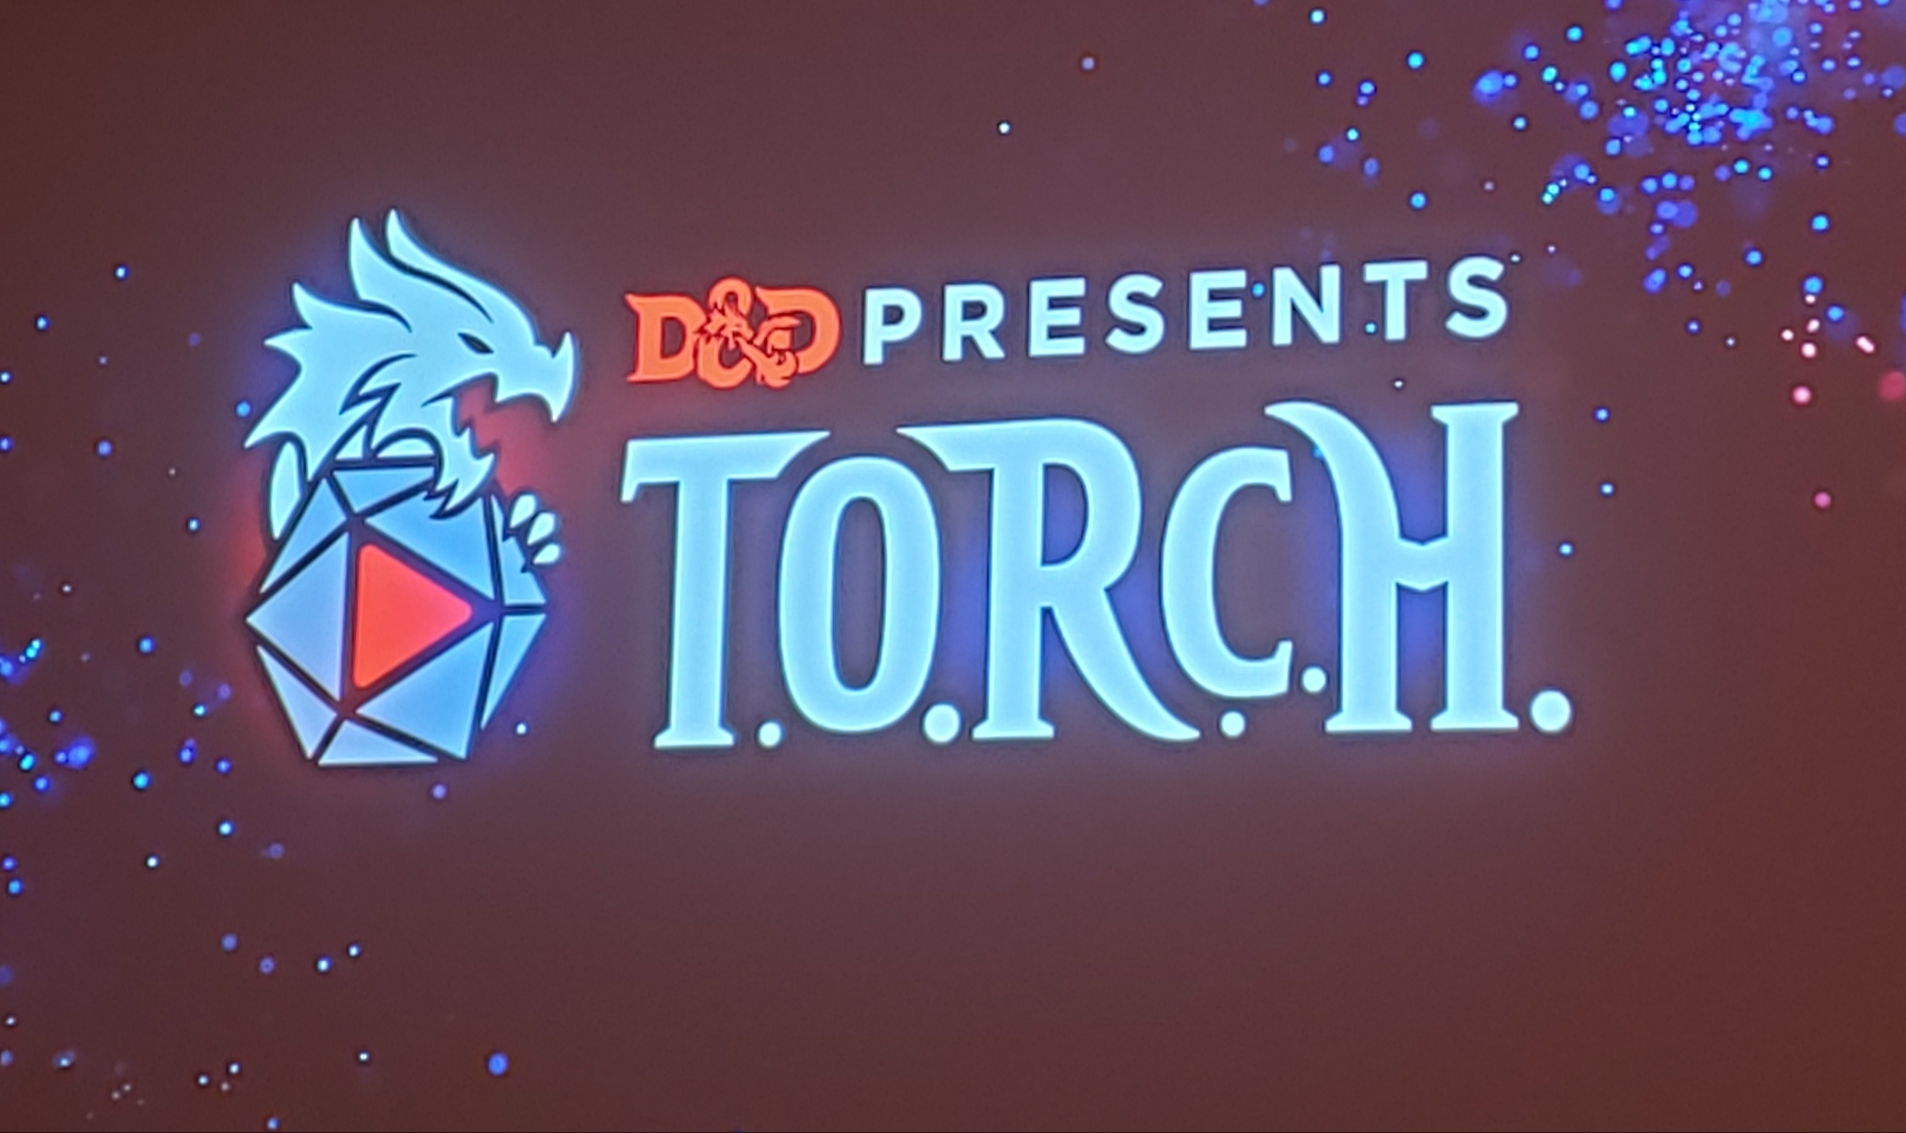 D&D Presents: T.O.R.C.H. Logo